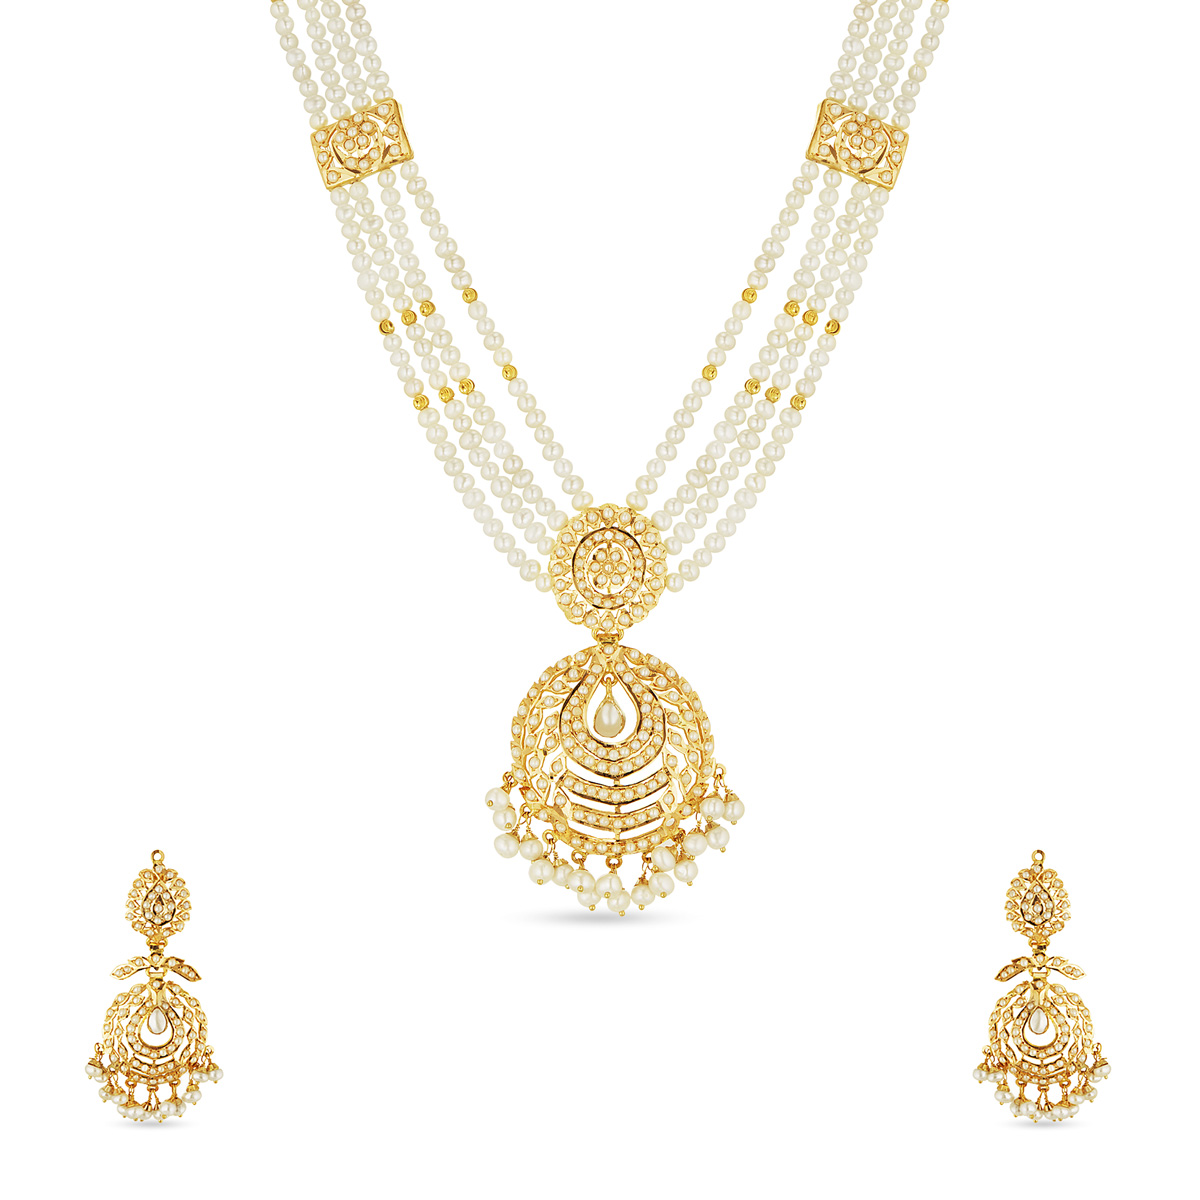 Shanthini necklace